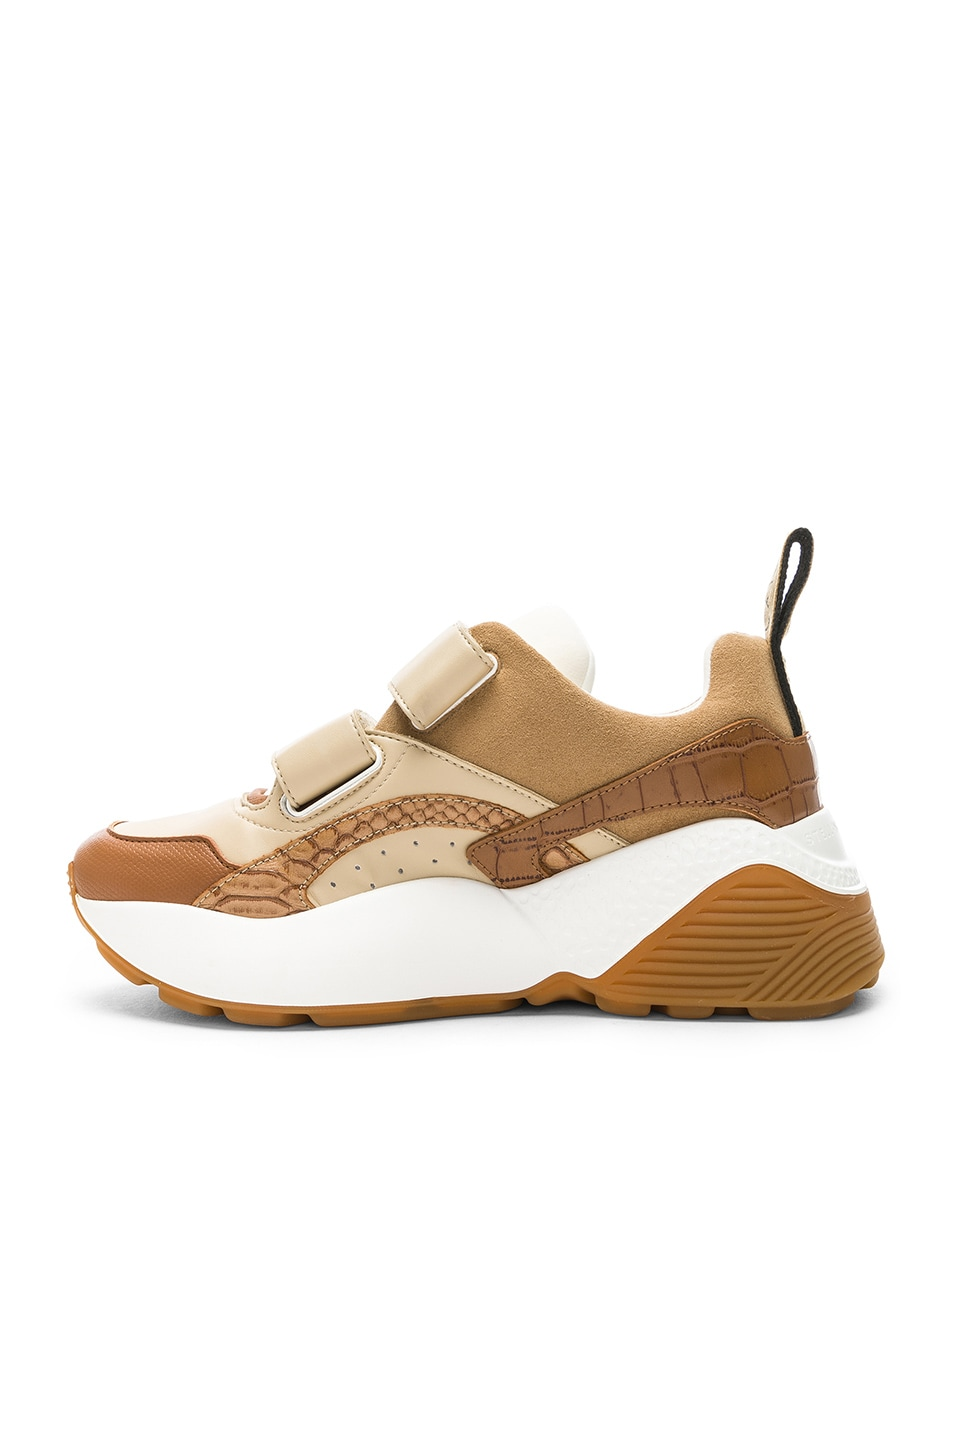 Image 5 of Stella McCartney Eclypse Velcro Strap Sneakers in Tan & White